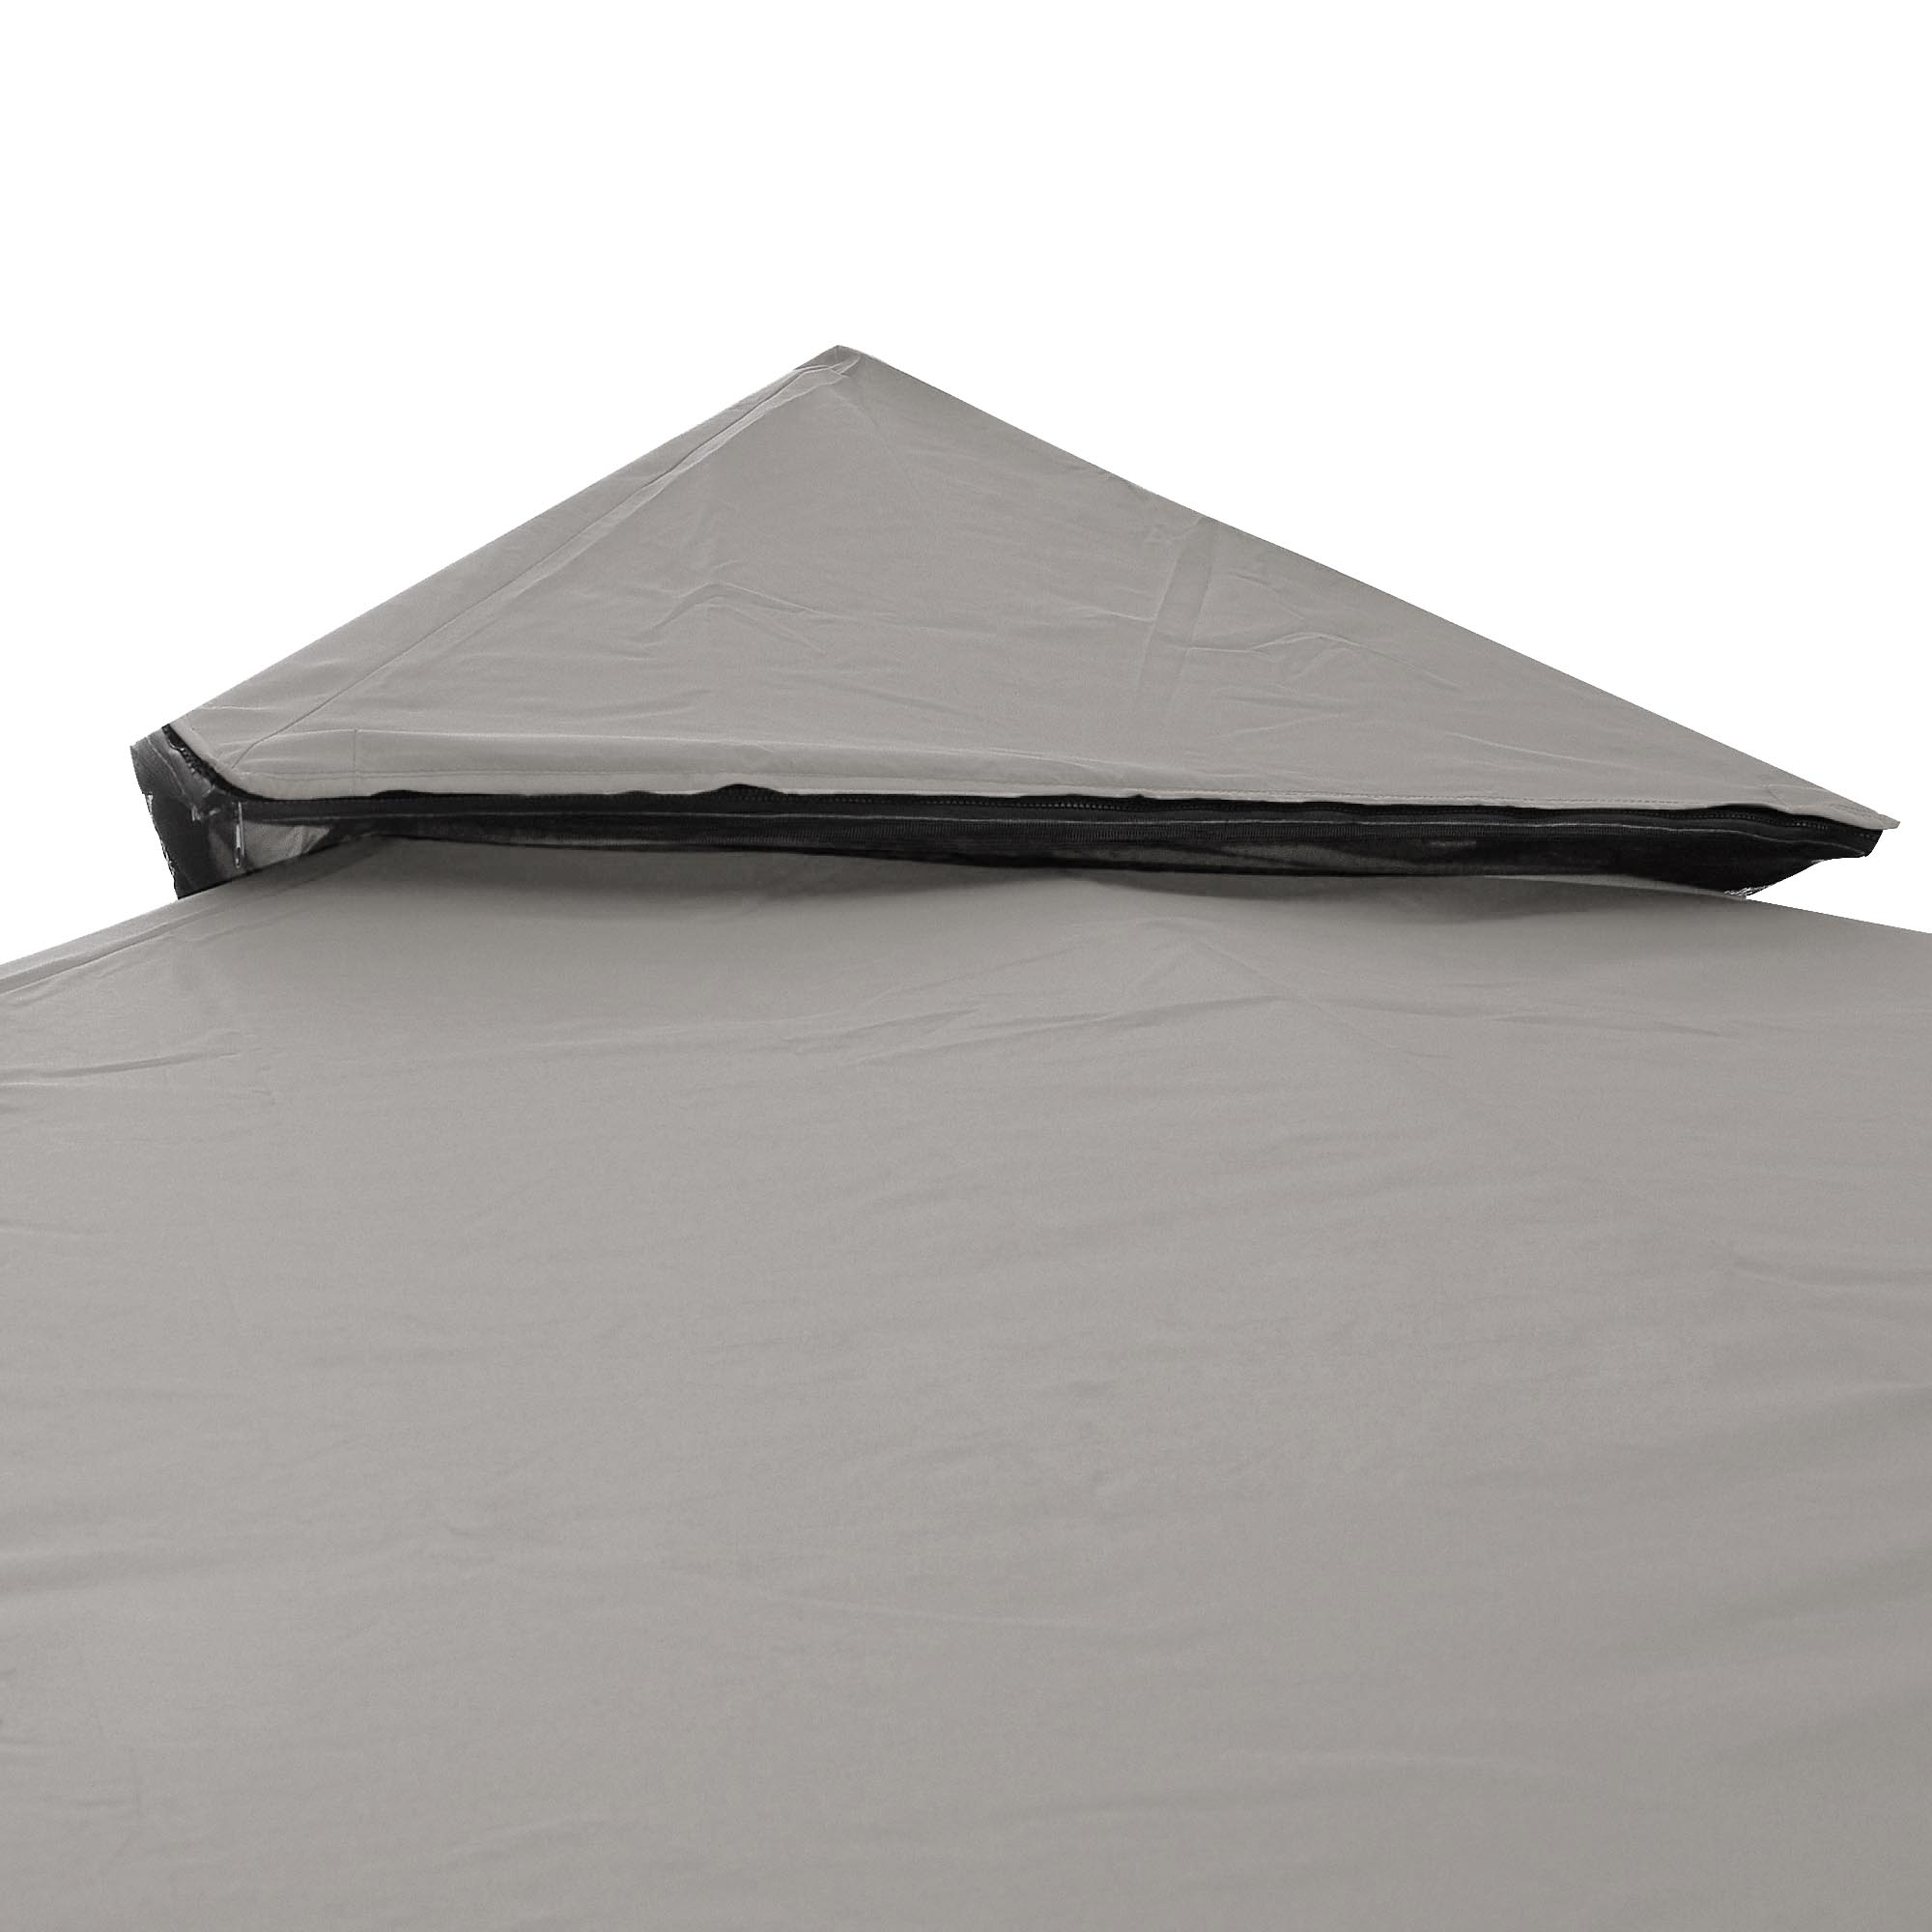 Waterproof-Gazebo-Top-Canopy-Replacement-2-Tier-UV30-Patio-Pavilion-Yard-Cover thumbnail 28